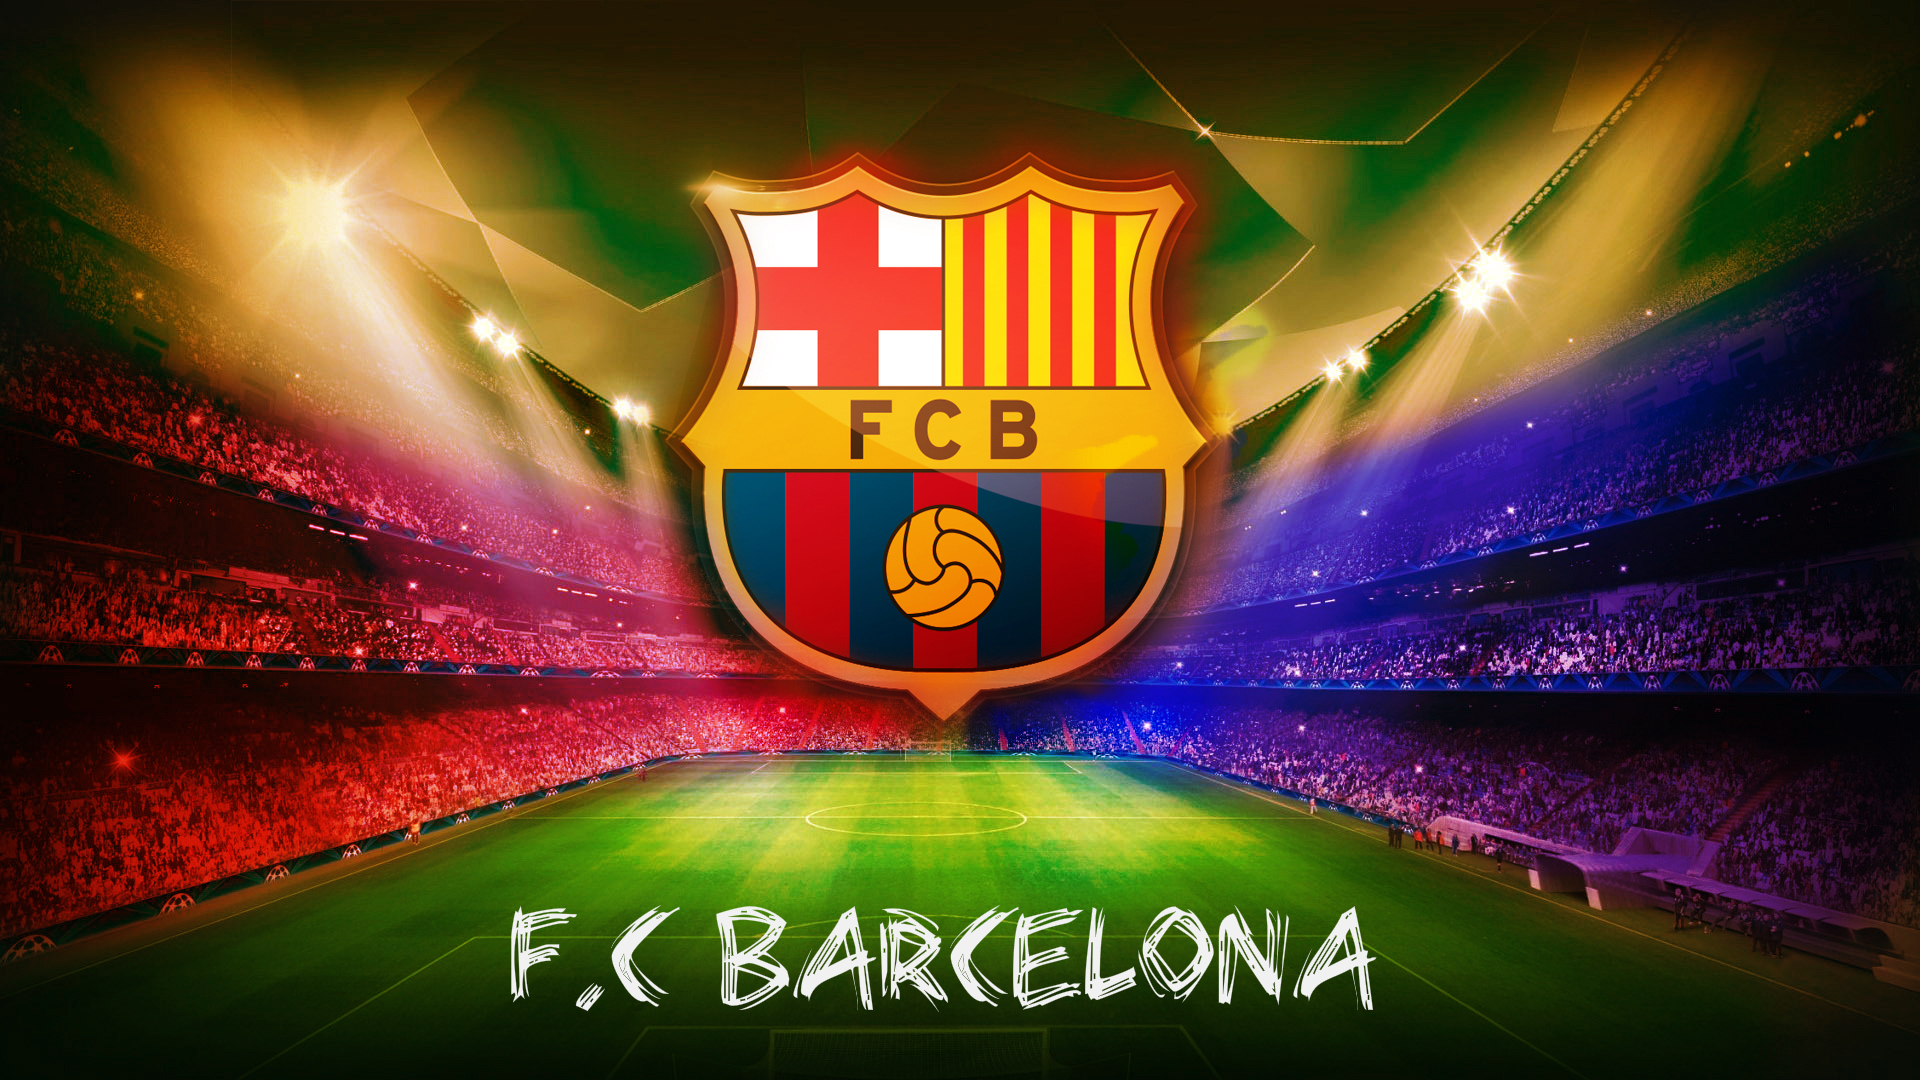 FC Barcelona Game on a Main Stadium 390.18 Kb